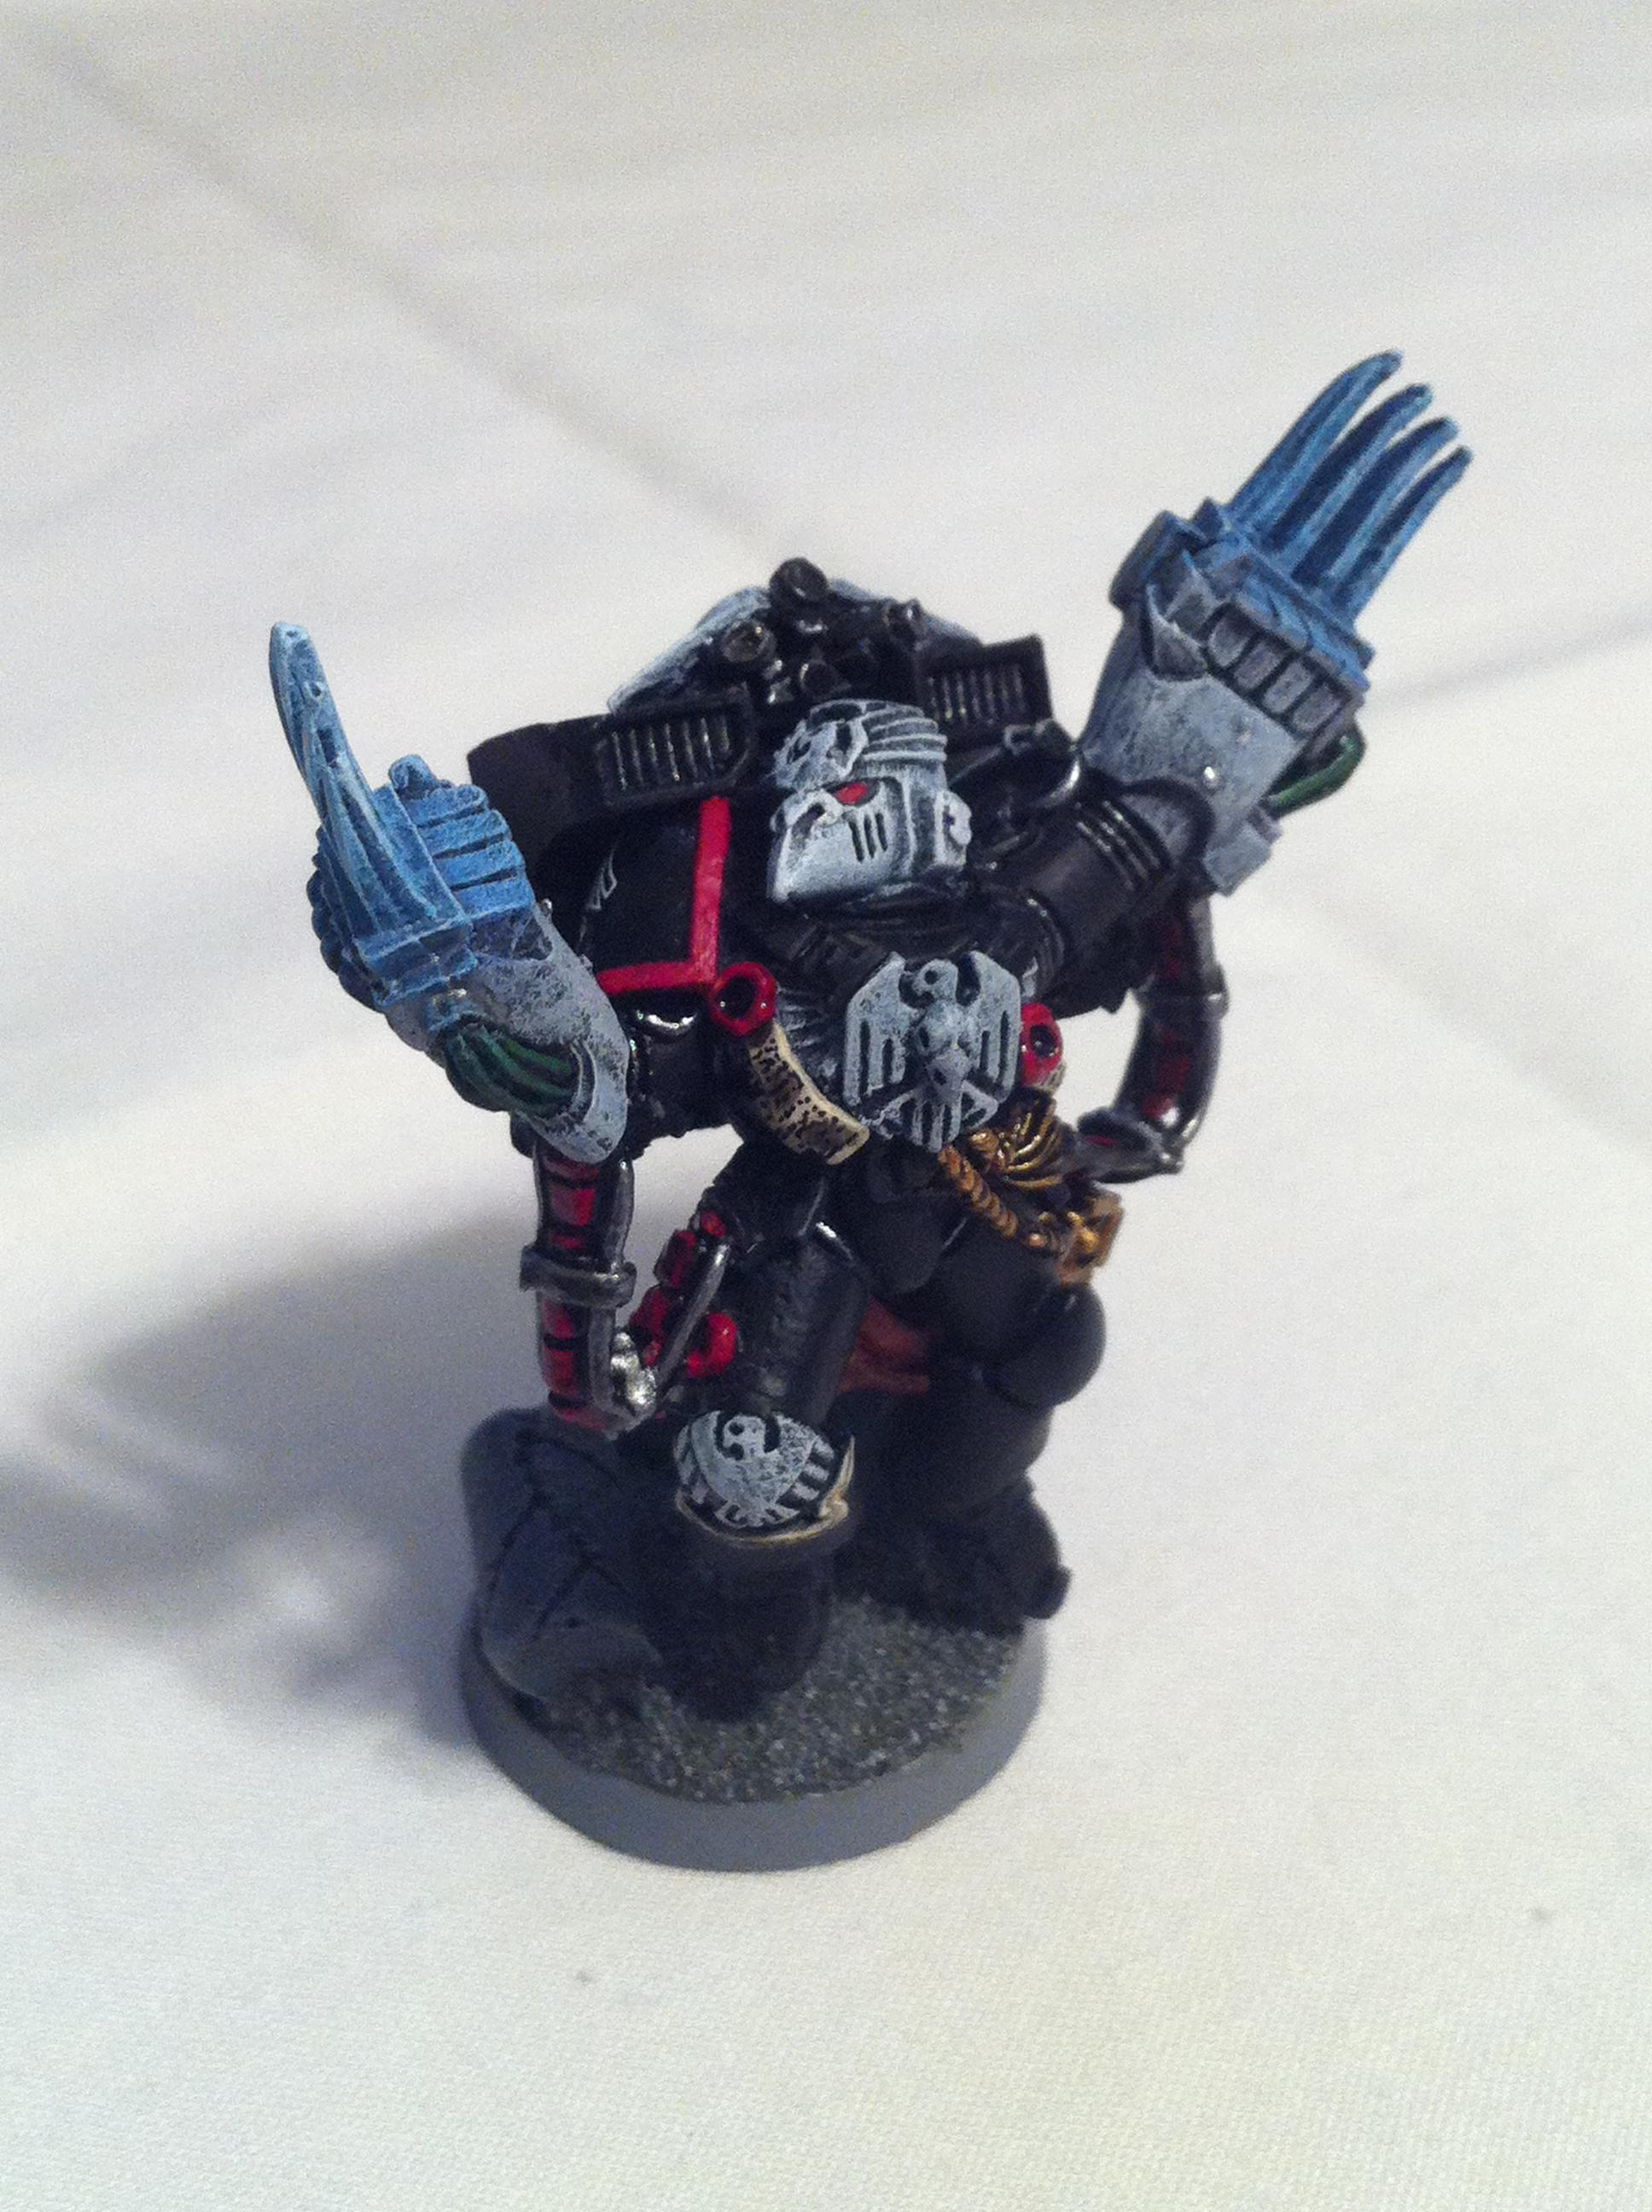 Kayvaan Shrike, Raven Guard, Space Marines